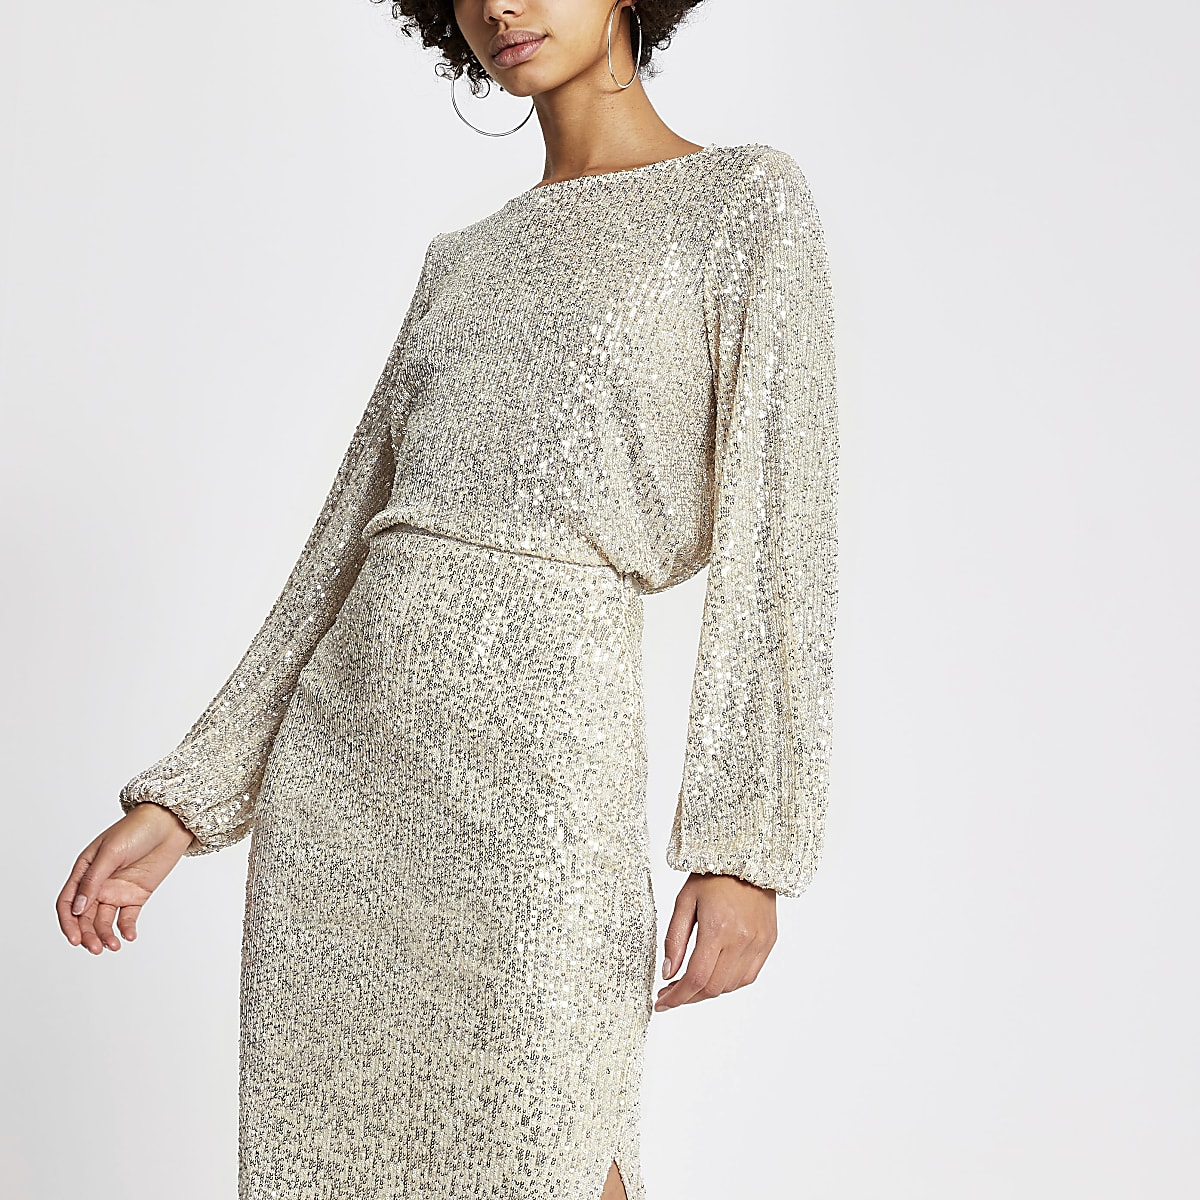 Silver sequin long sheer balloon sleeve top